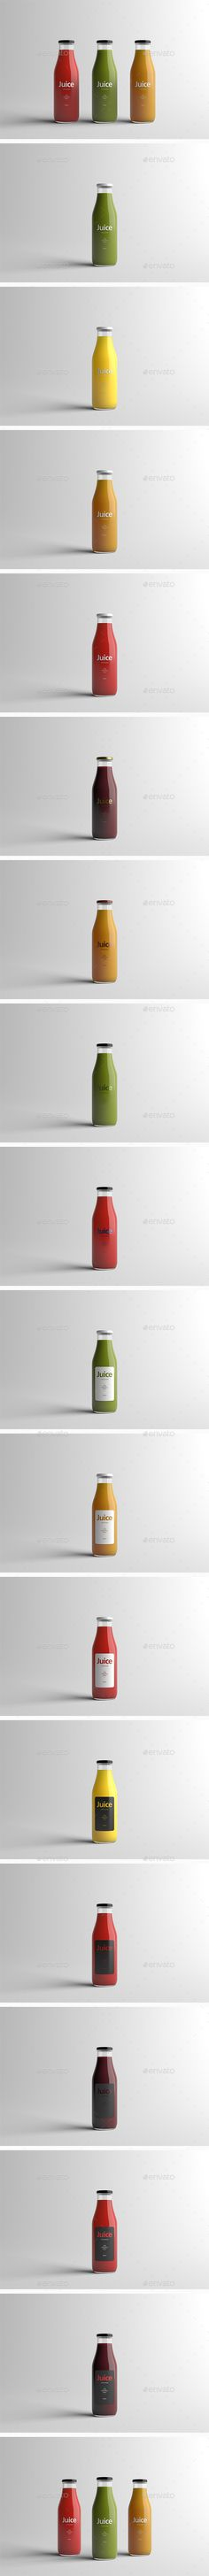 Juice Bottle Packaging Mock-Up. Download here: http://graphicriver.net/item/juice-bottle-packaging-mockup/15897481?ref=ksioks